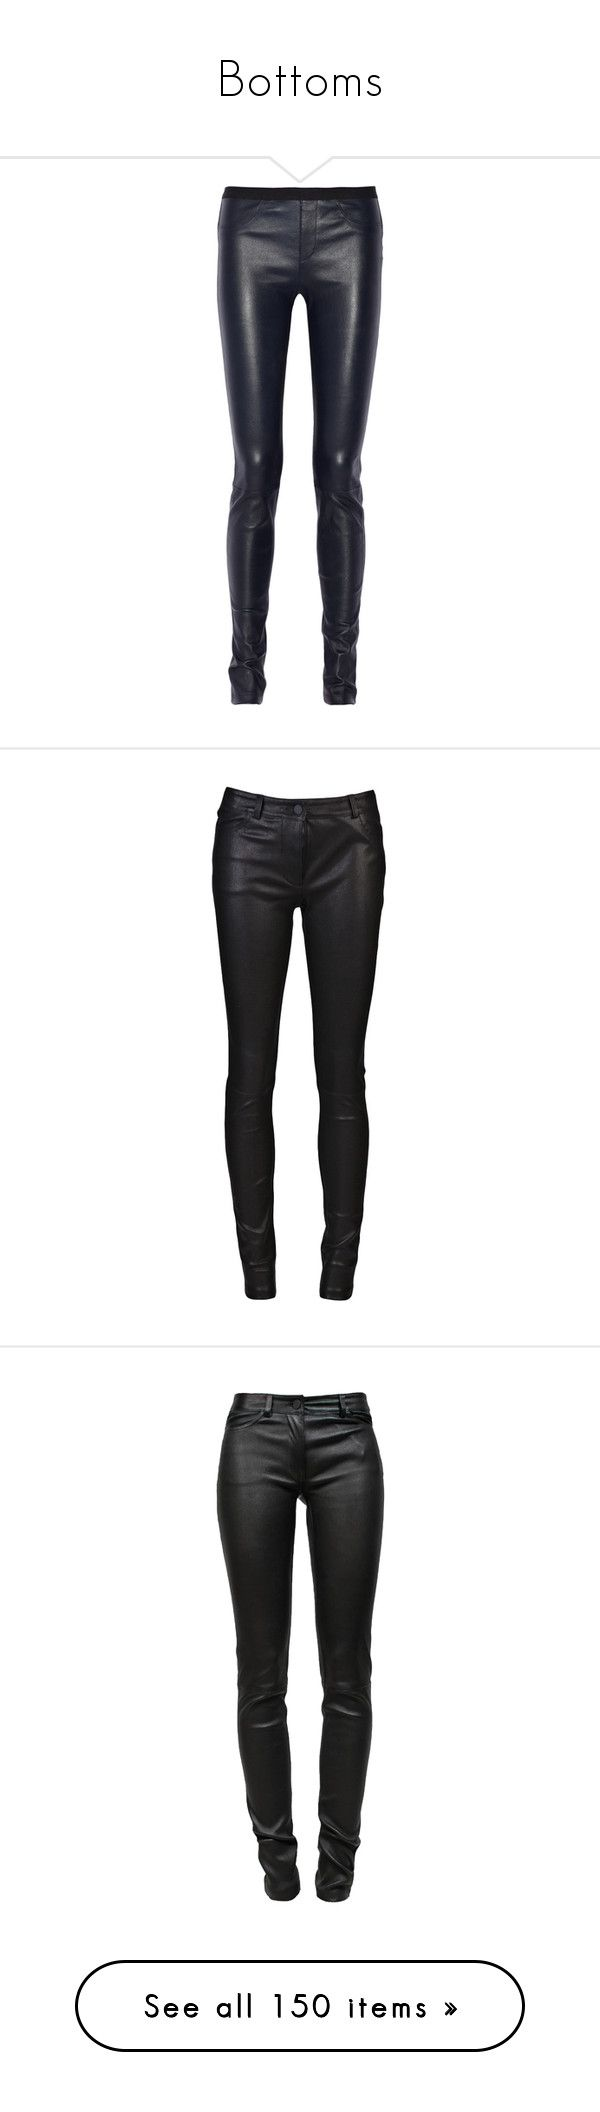 """""""Bottoms"""" by candygirllnm ❤ liked on Polyvore featuring shorts, jeans, trousers, pants, Leggings, leggings, helmut lang, clothing - pants, real leather pants and leather pants"""